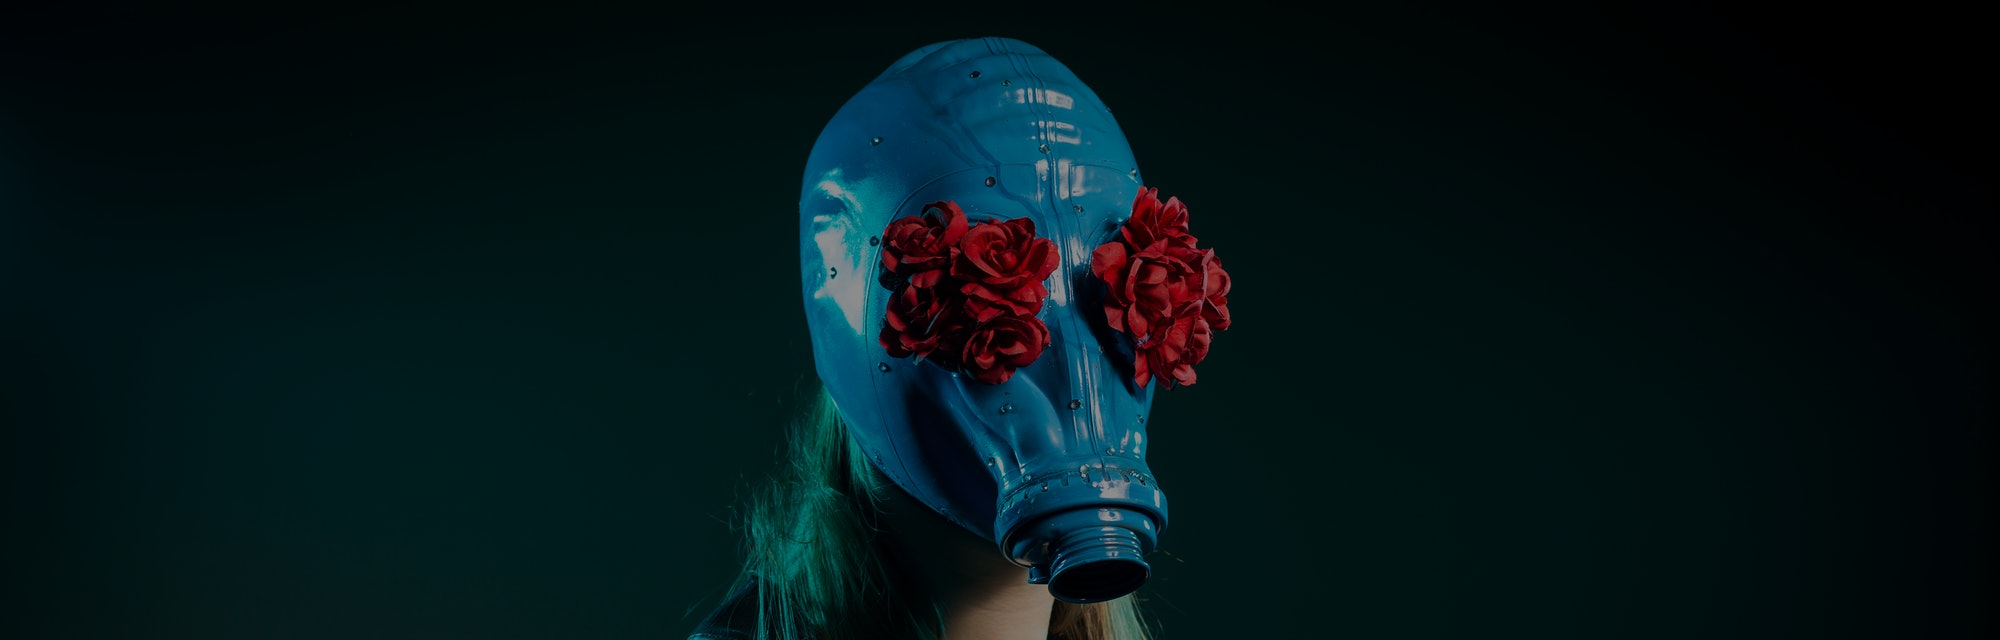 Girl in a blue gas mask on a green background